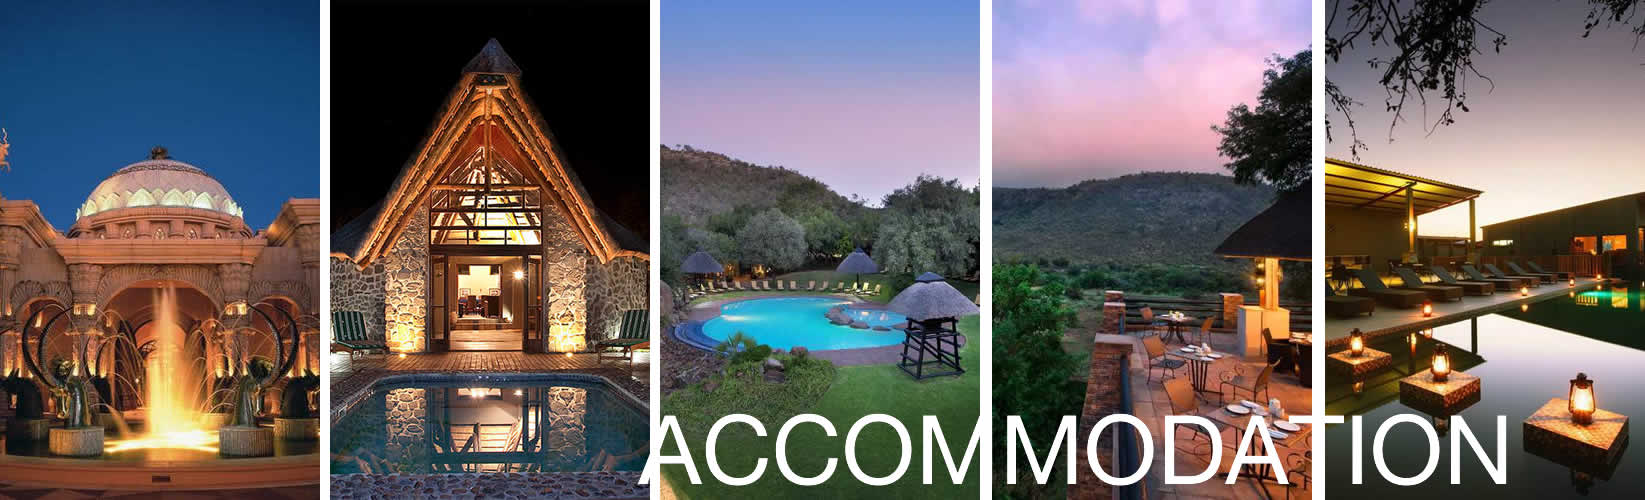 Pilanesberg National Park accommodation